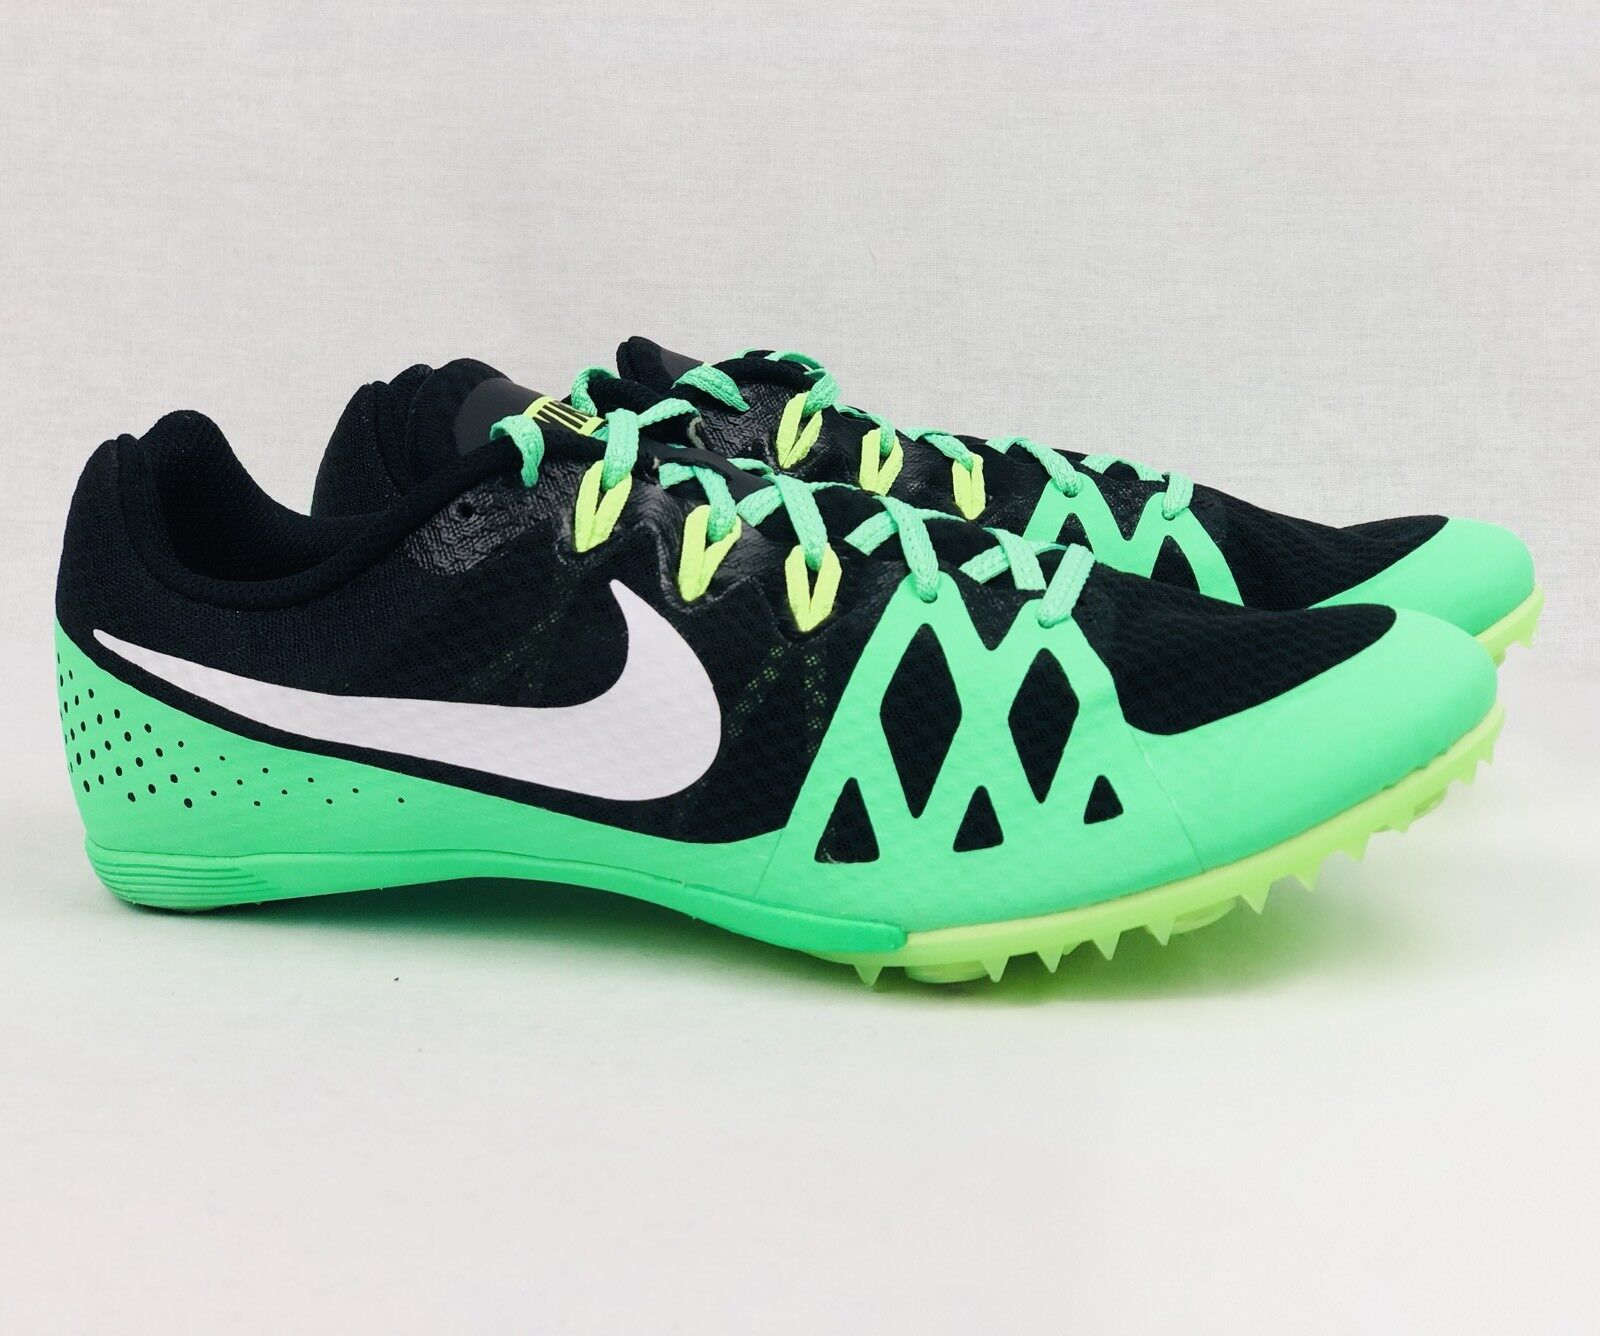 Nike Cleats Rival M Mens Racing Running Shoes Cleats Nike Track Spikes (Size 12) 1406b0